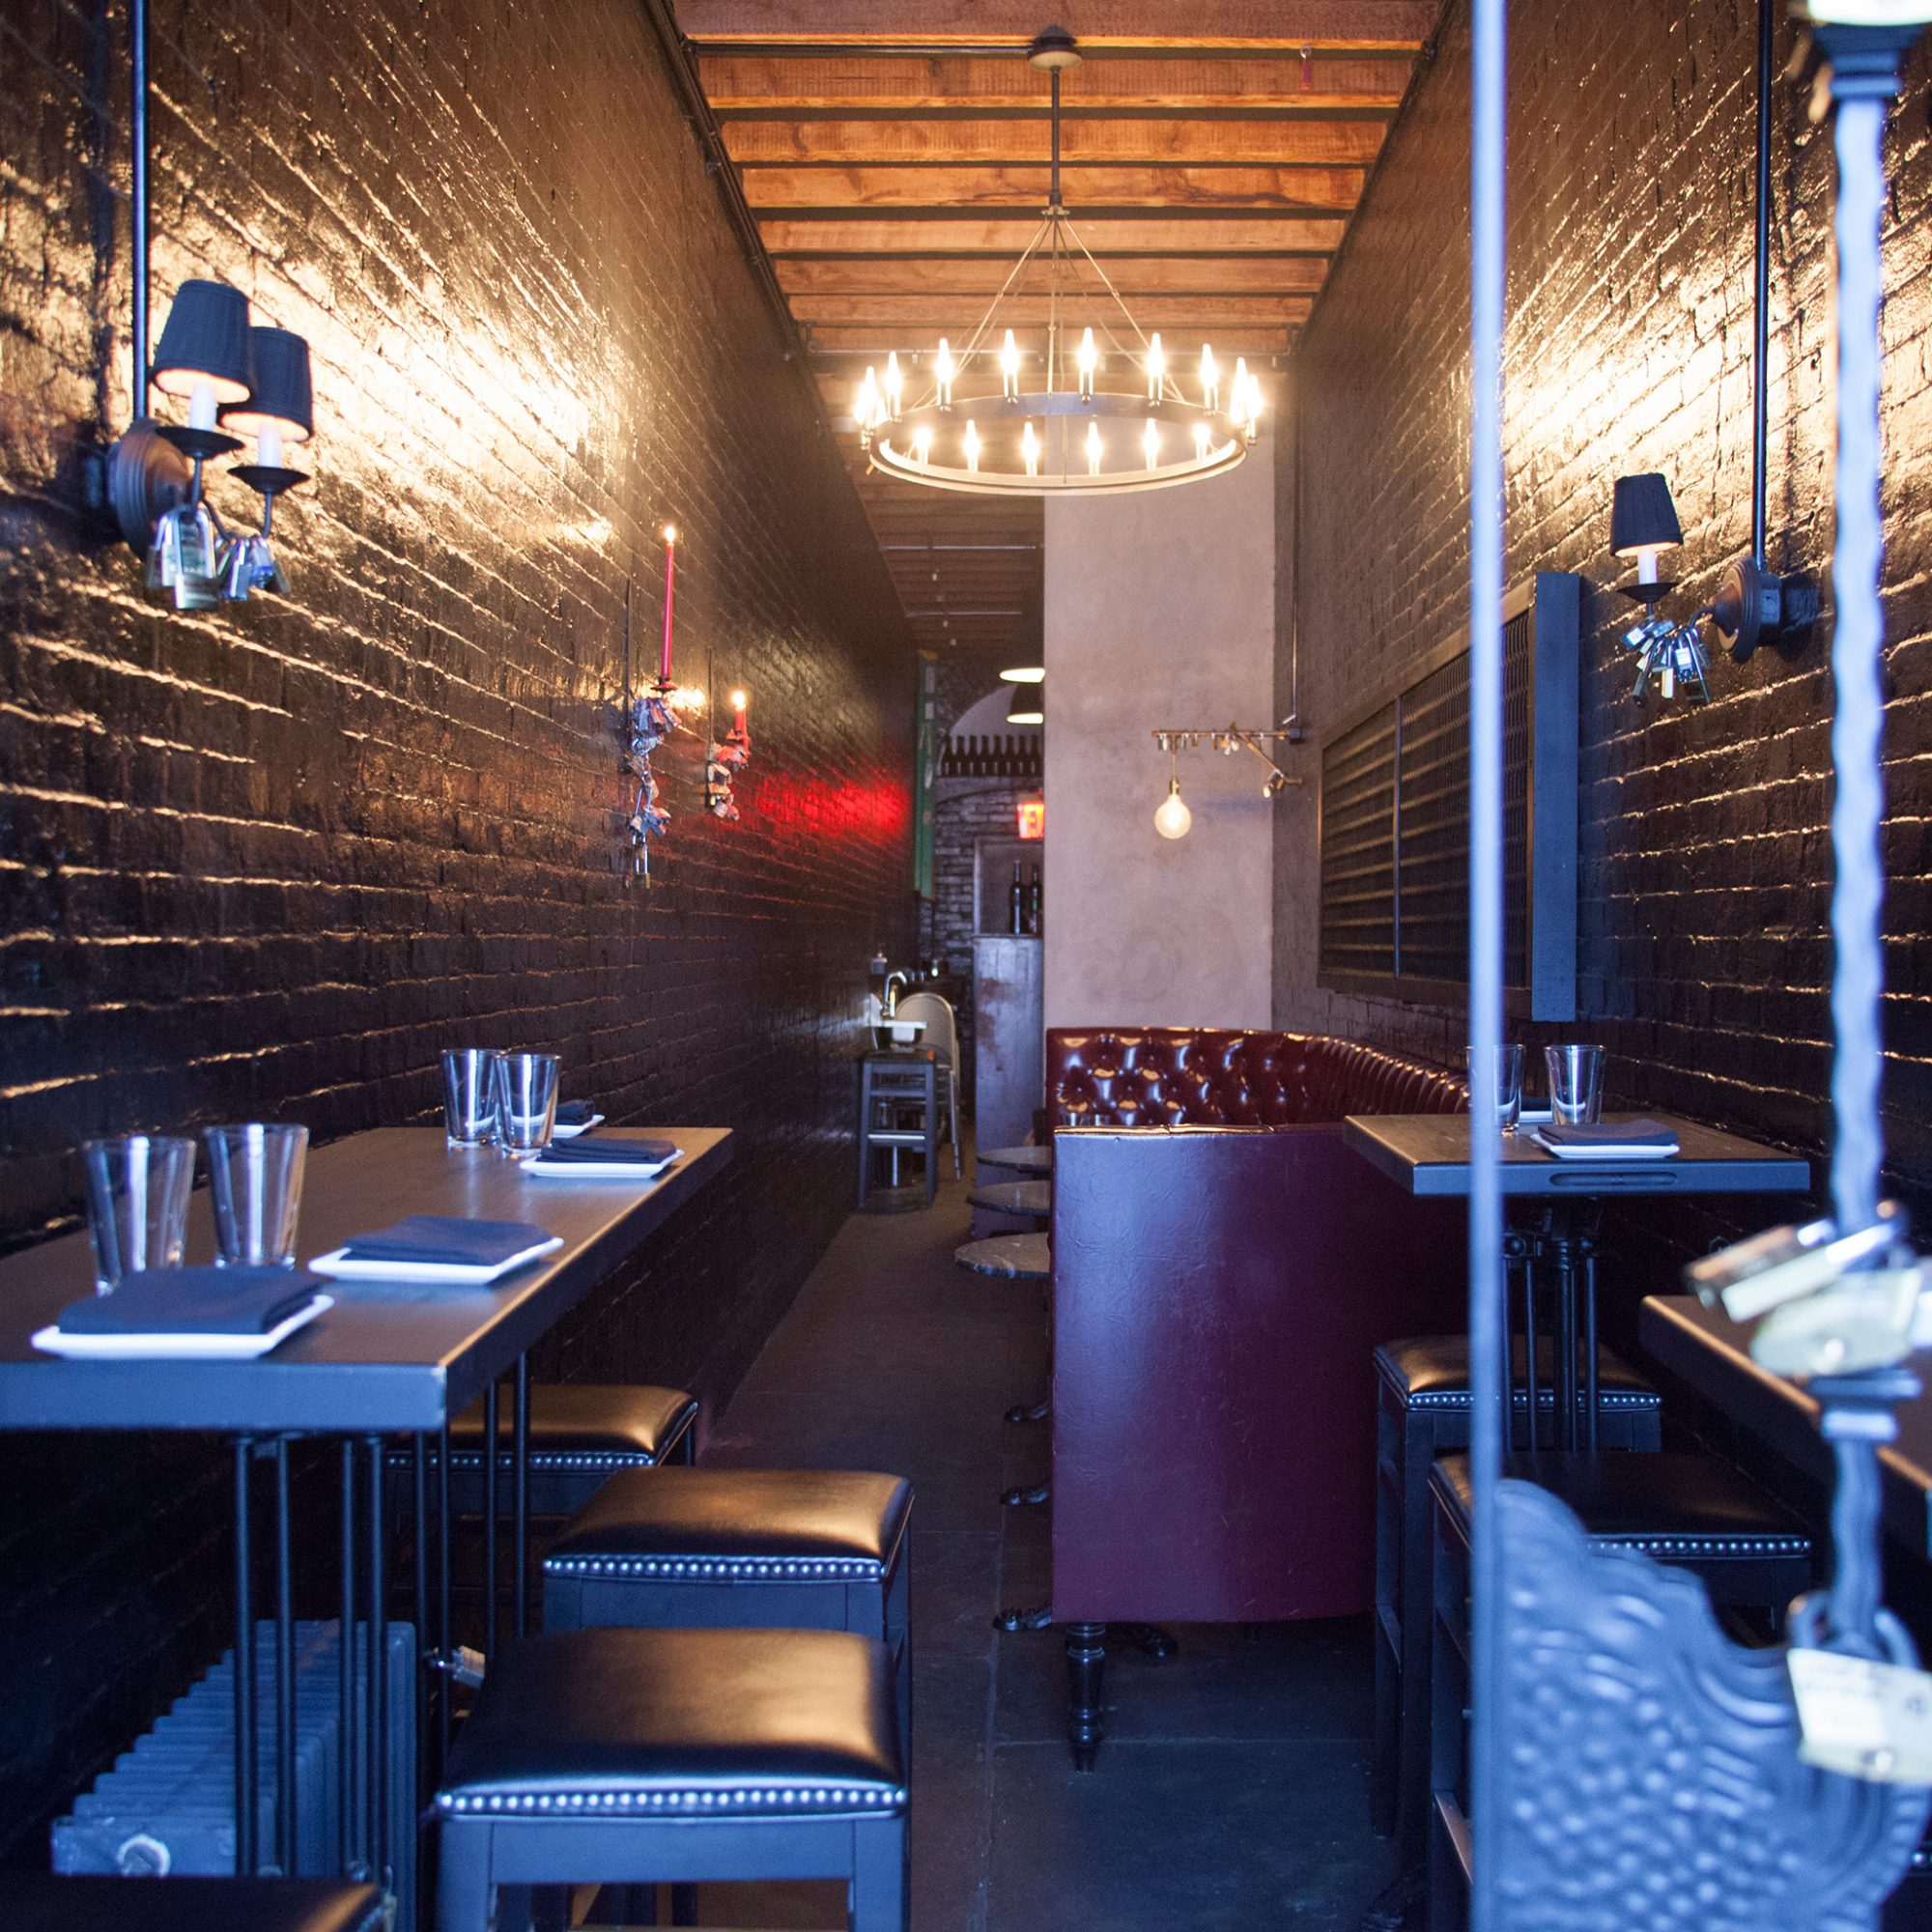 FWX NY HIDDEN BARS AND RESTAURANTS VIRGOLA